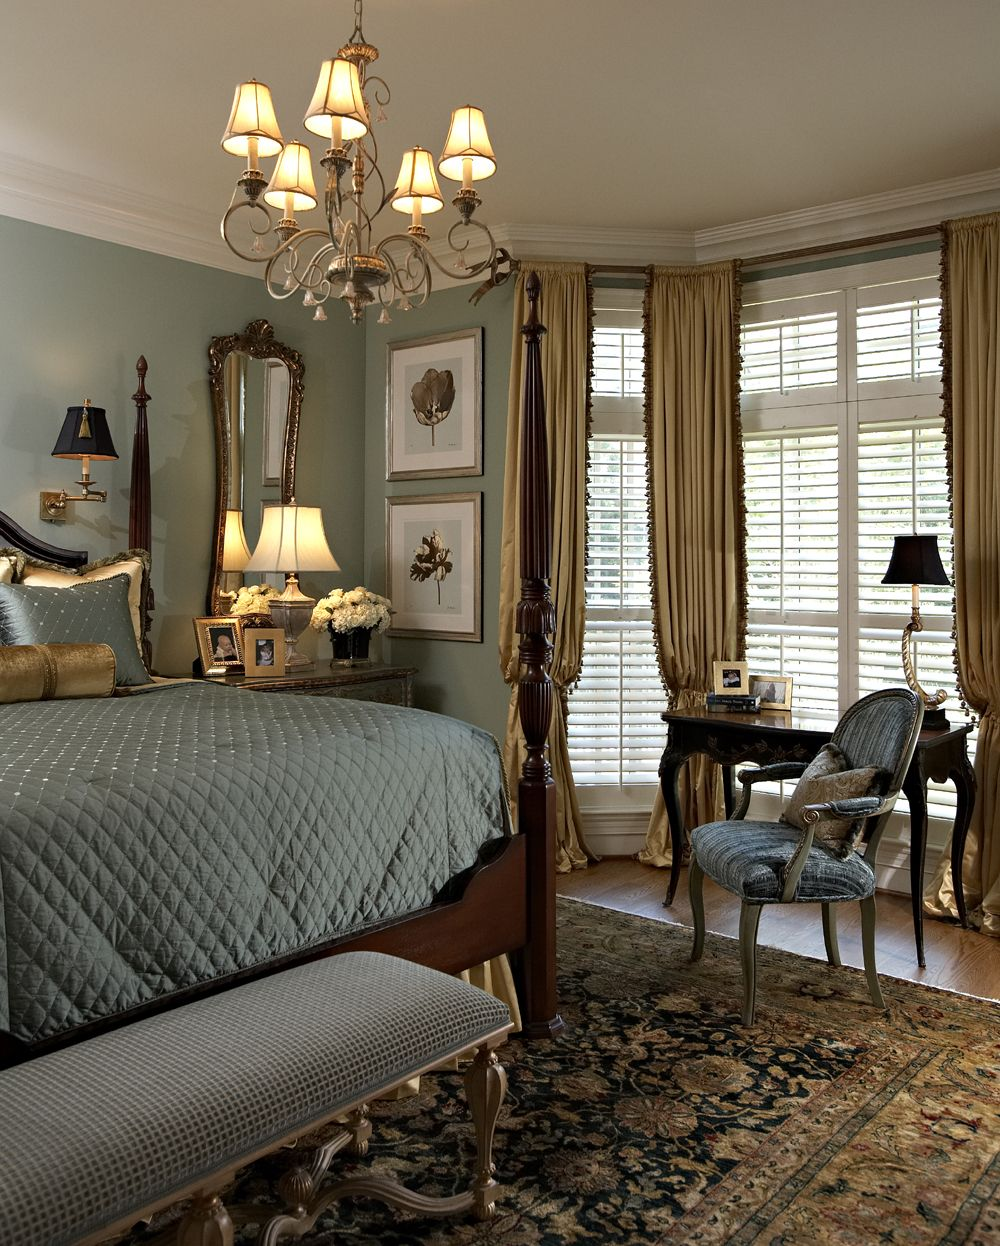 Green Curtains Bedroom Bedroom Chandeliers Master Bedroom Bay Window Ladybug Bedroom Decor: Gold And Blue. Love The Chandelier, The Wall Sconces, The